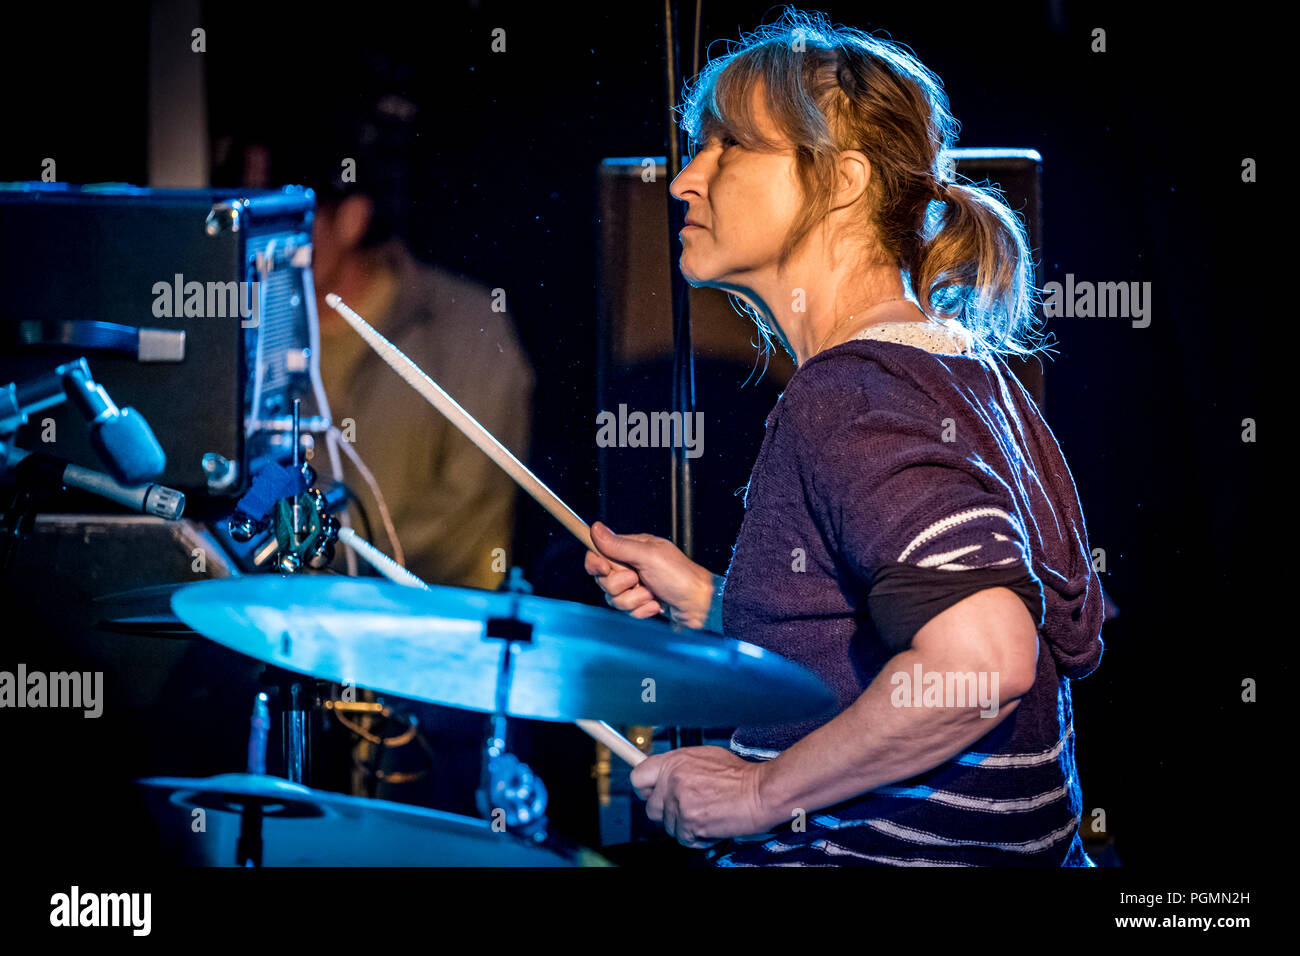 Denmark, Albertslund - August 25, 2018. The American indie rock ...